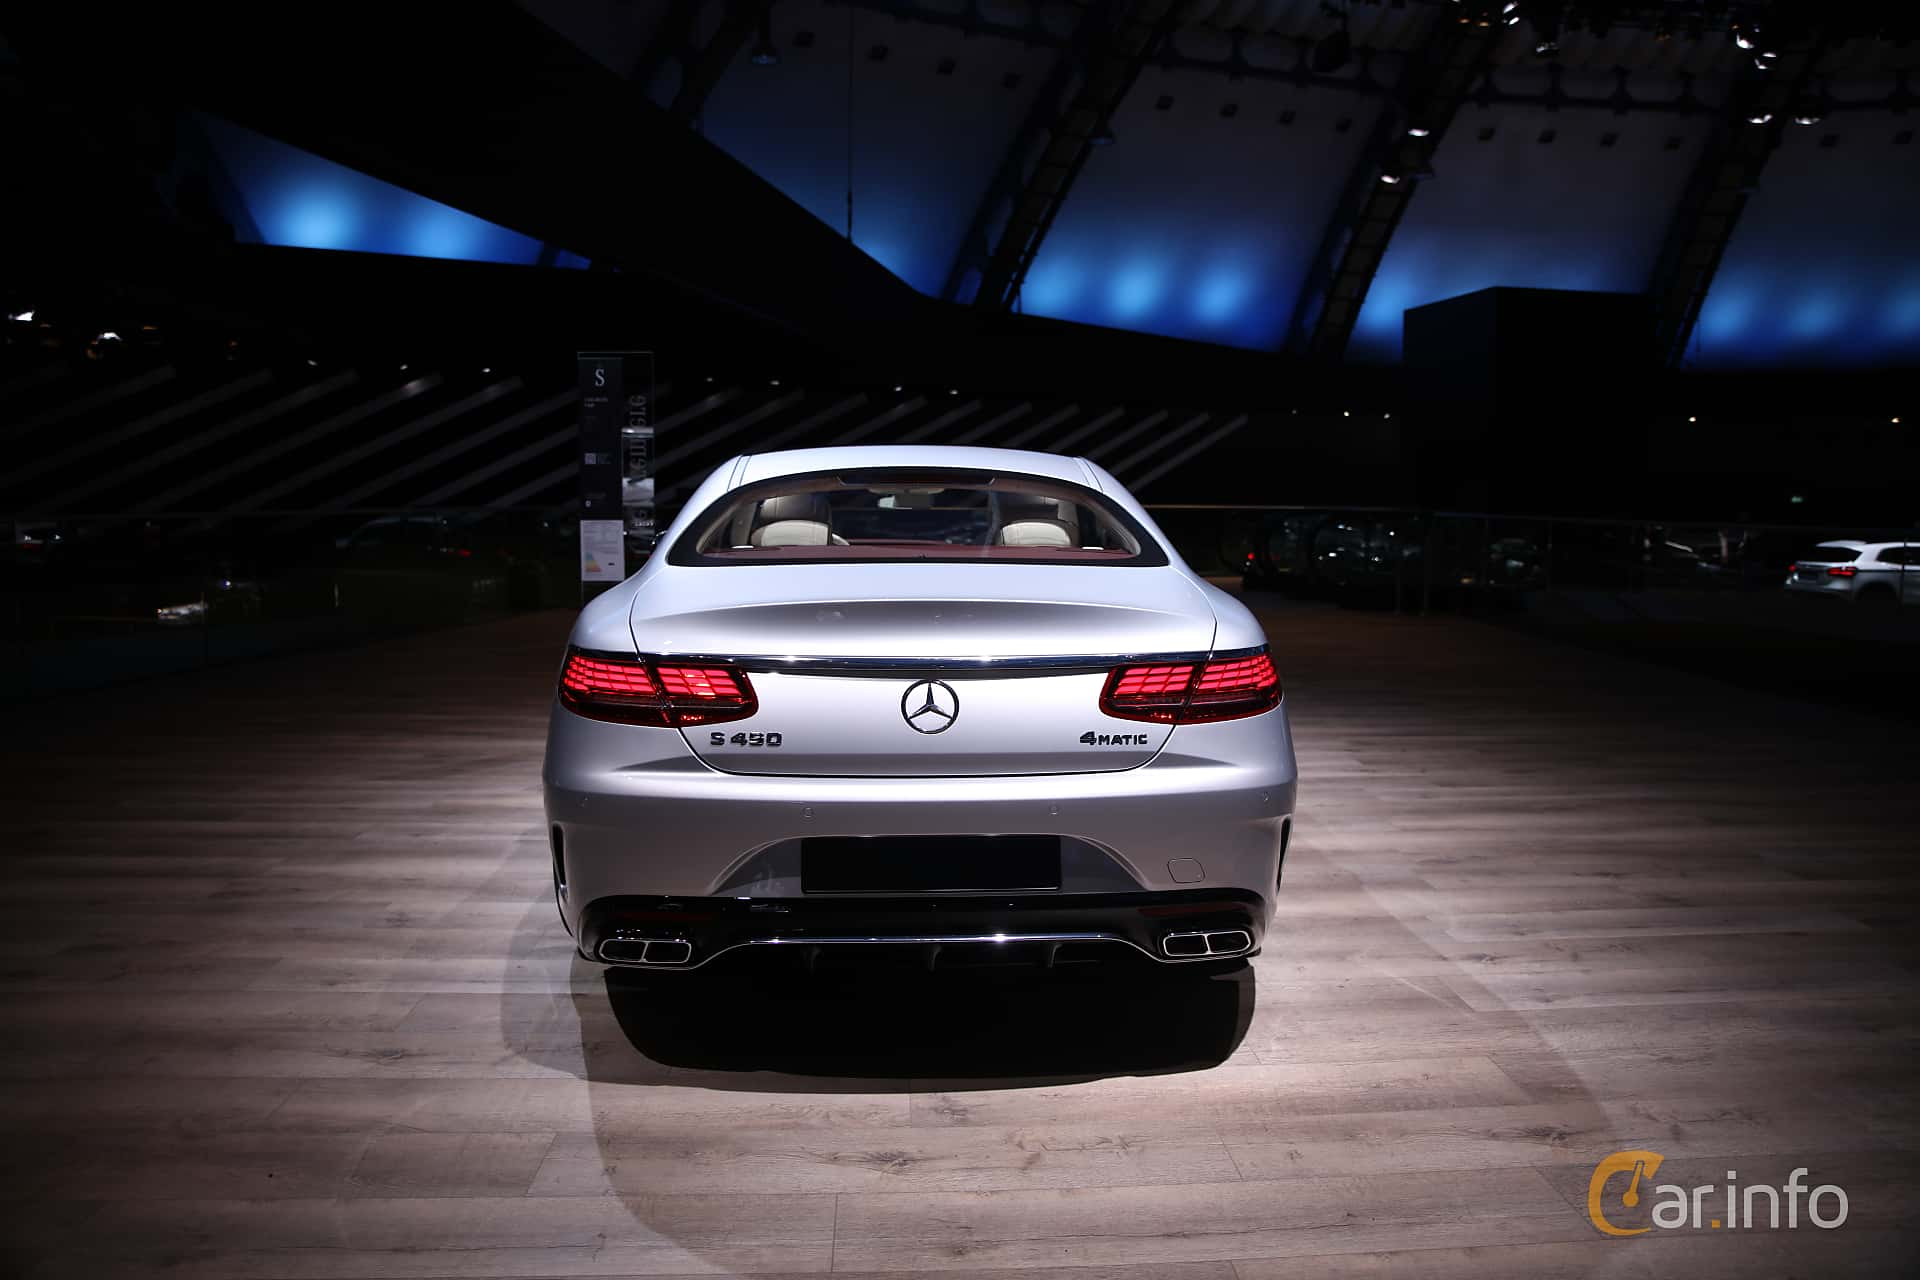 Mercedes-Benz S 450 4MATIC Coupé  9G-Tronic, 367hp, 2018 at IAA 2017